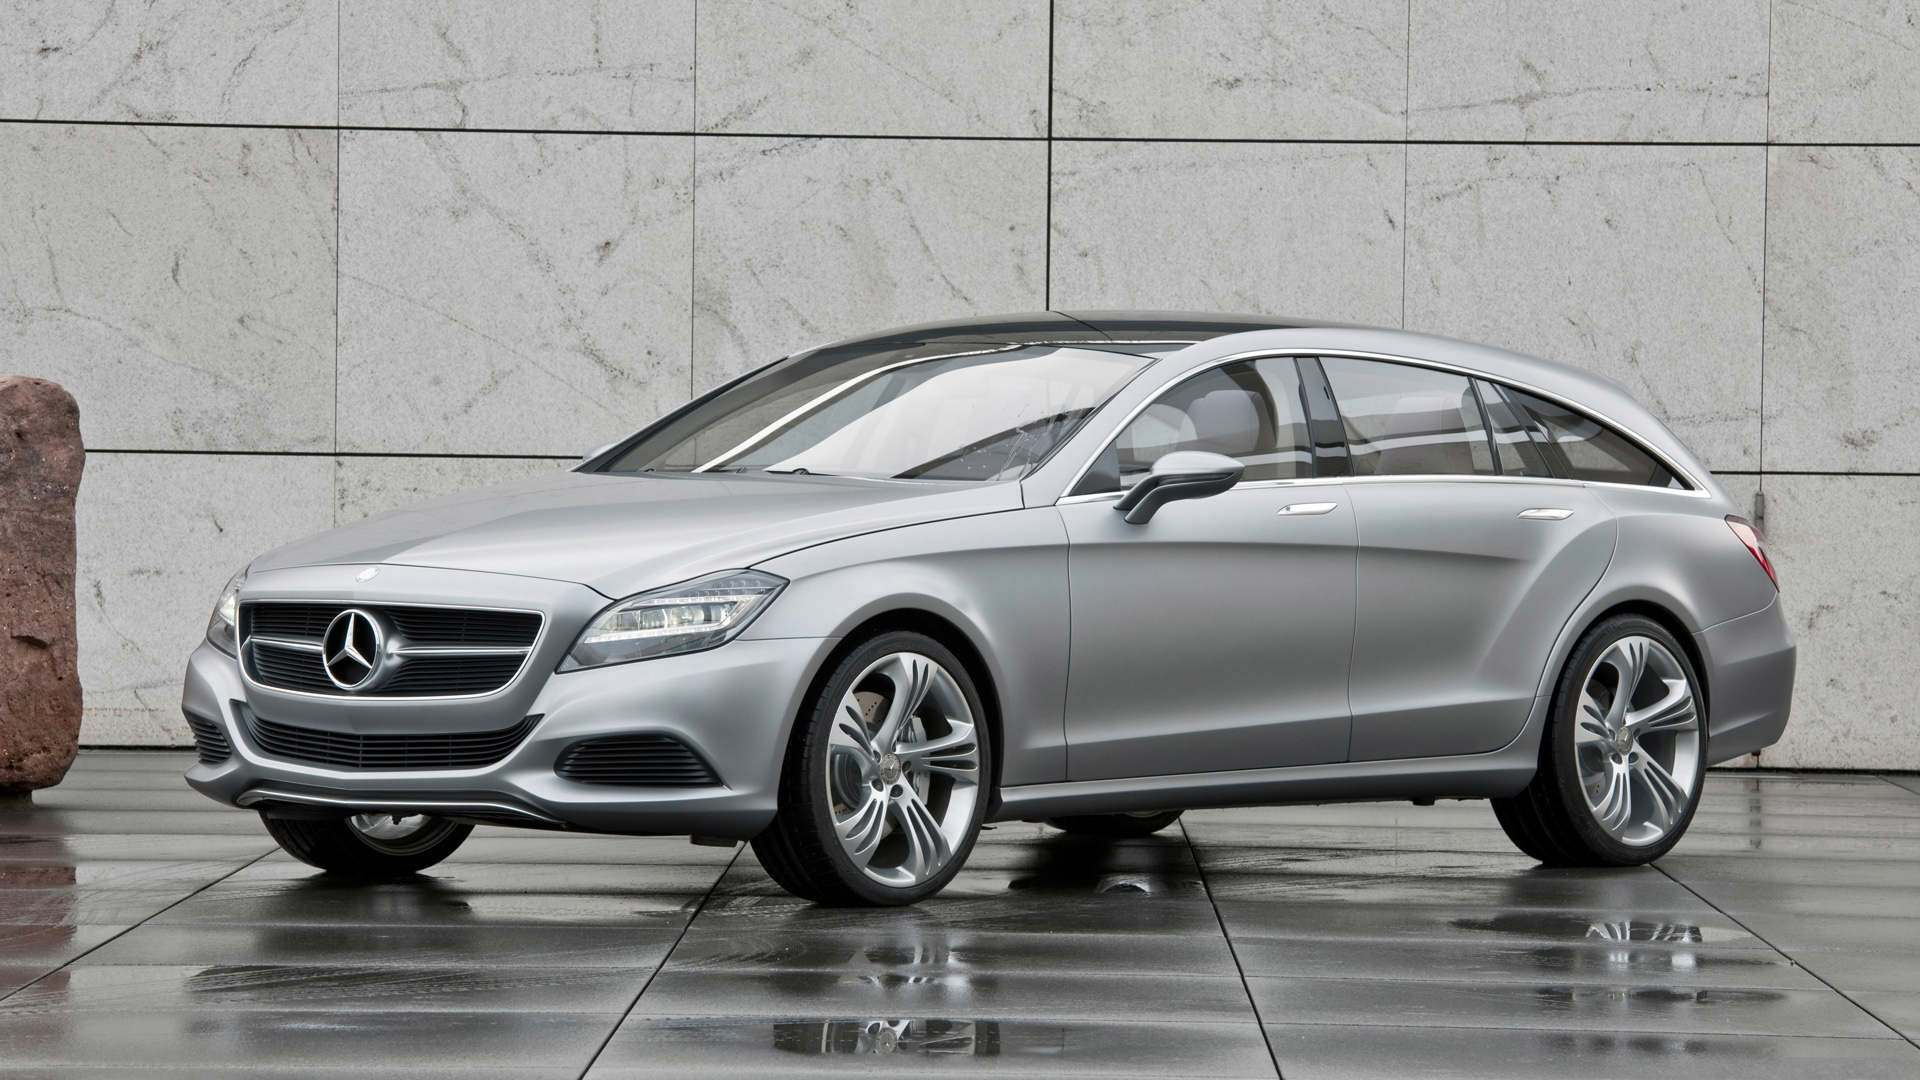 Mercedes benz cars hd wallpapers for Cars of mercedes benz